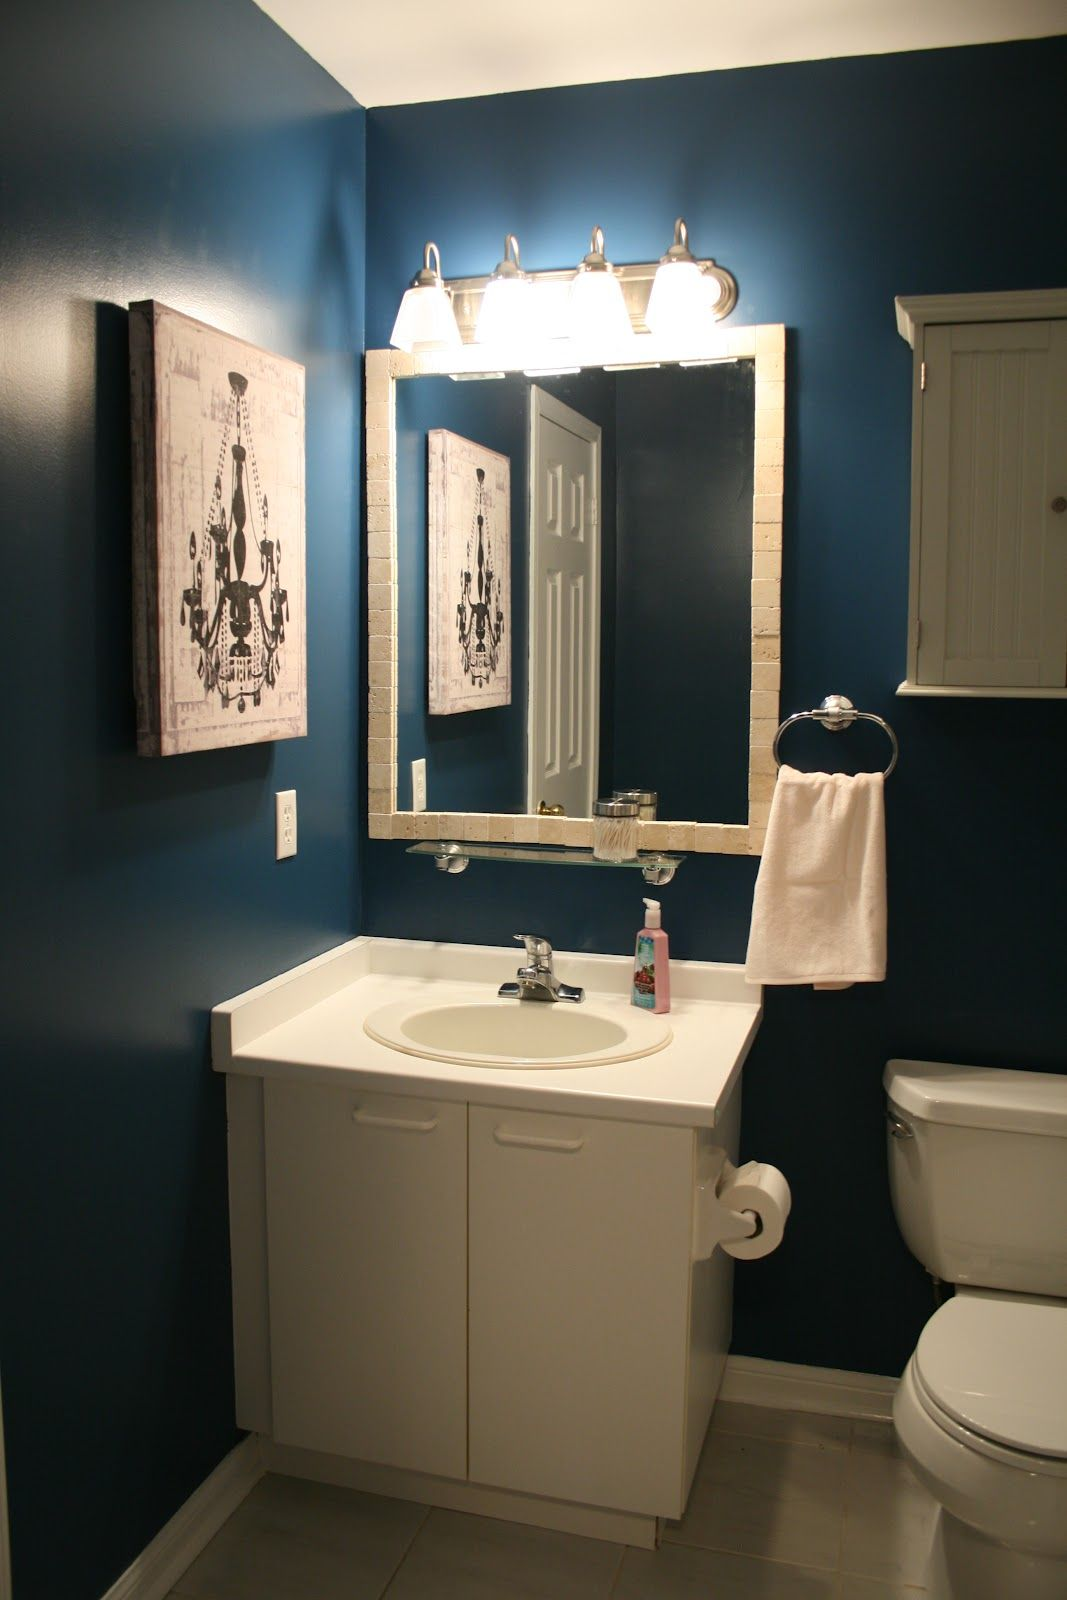 Not A Fan Of The Dark Walls But Love The Mirror With A